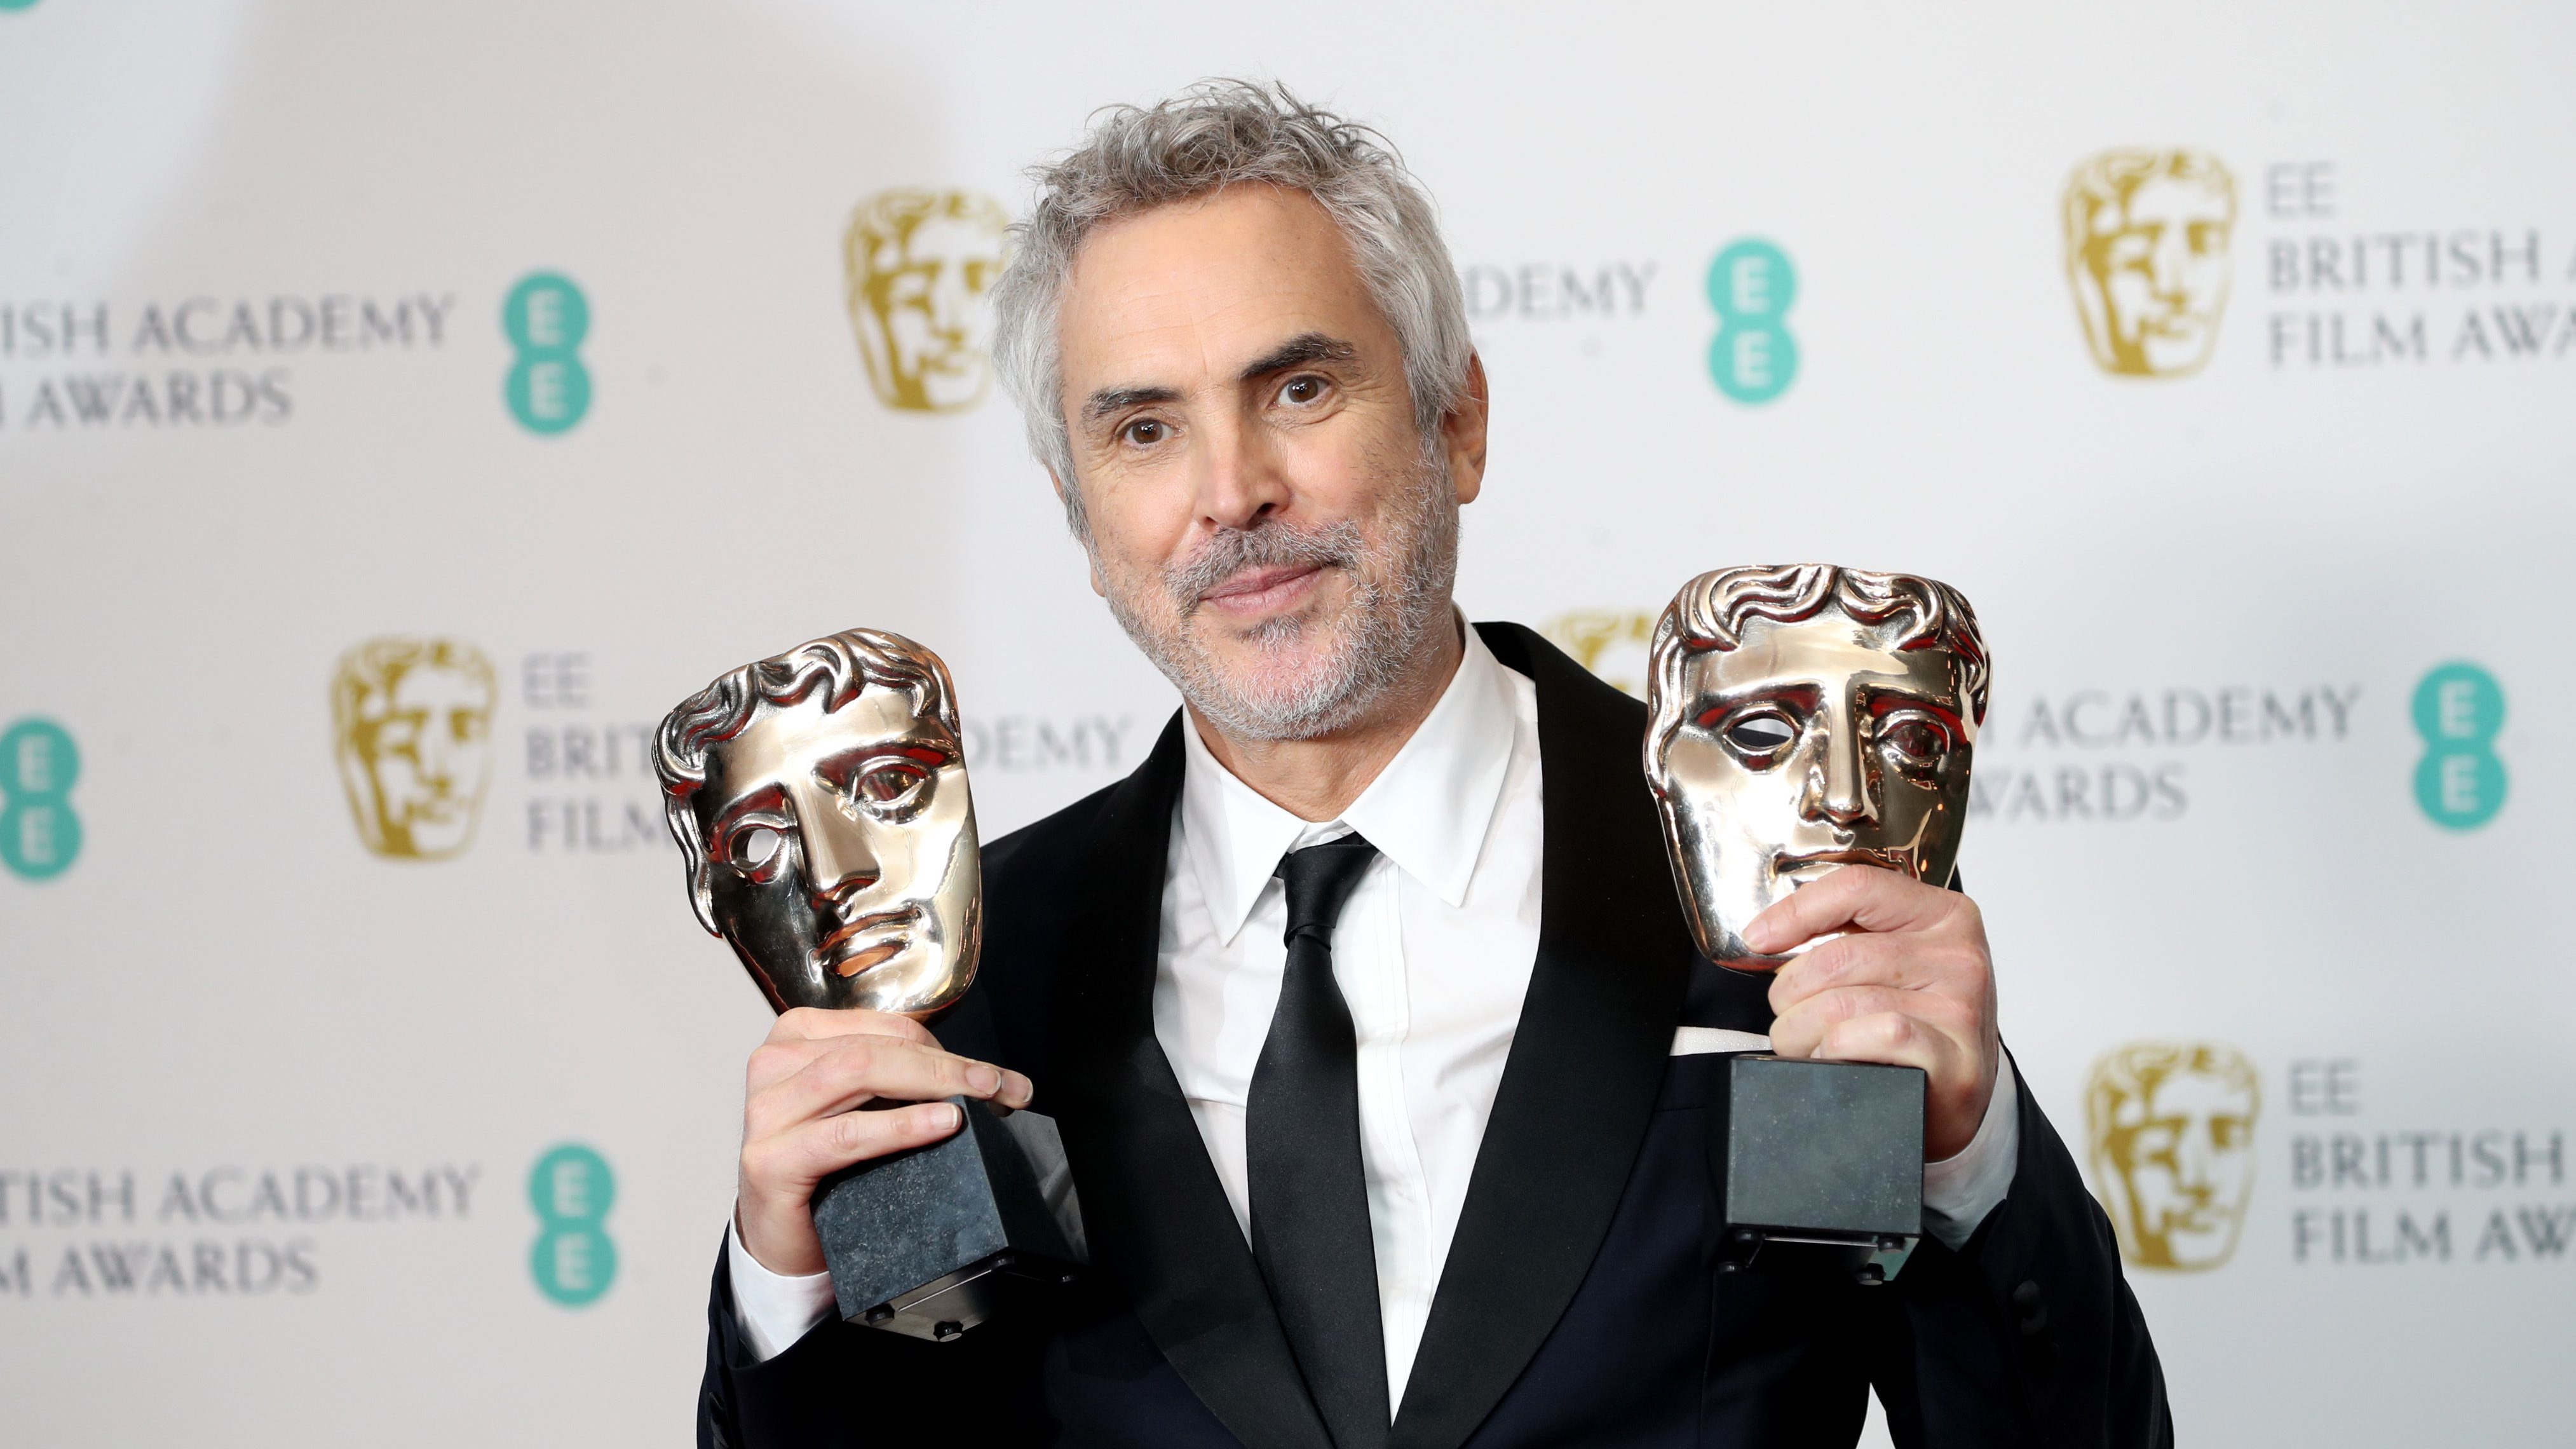 Baftas 2019: The Favourite wins seven, Roma is Best Film